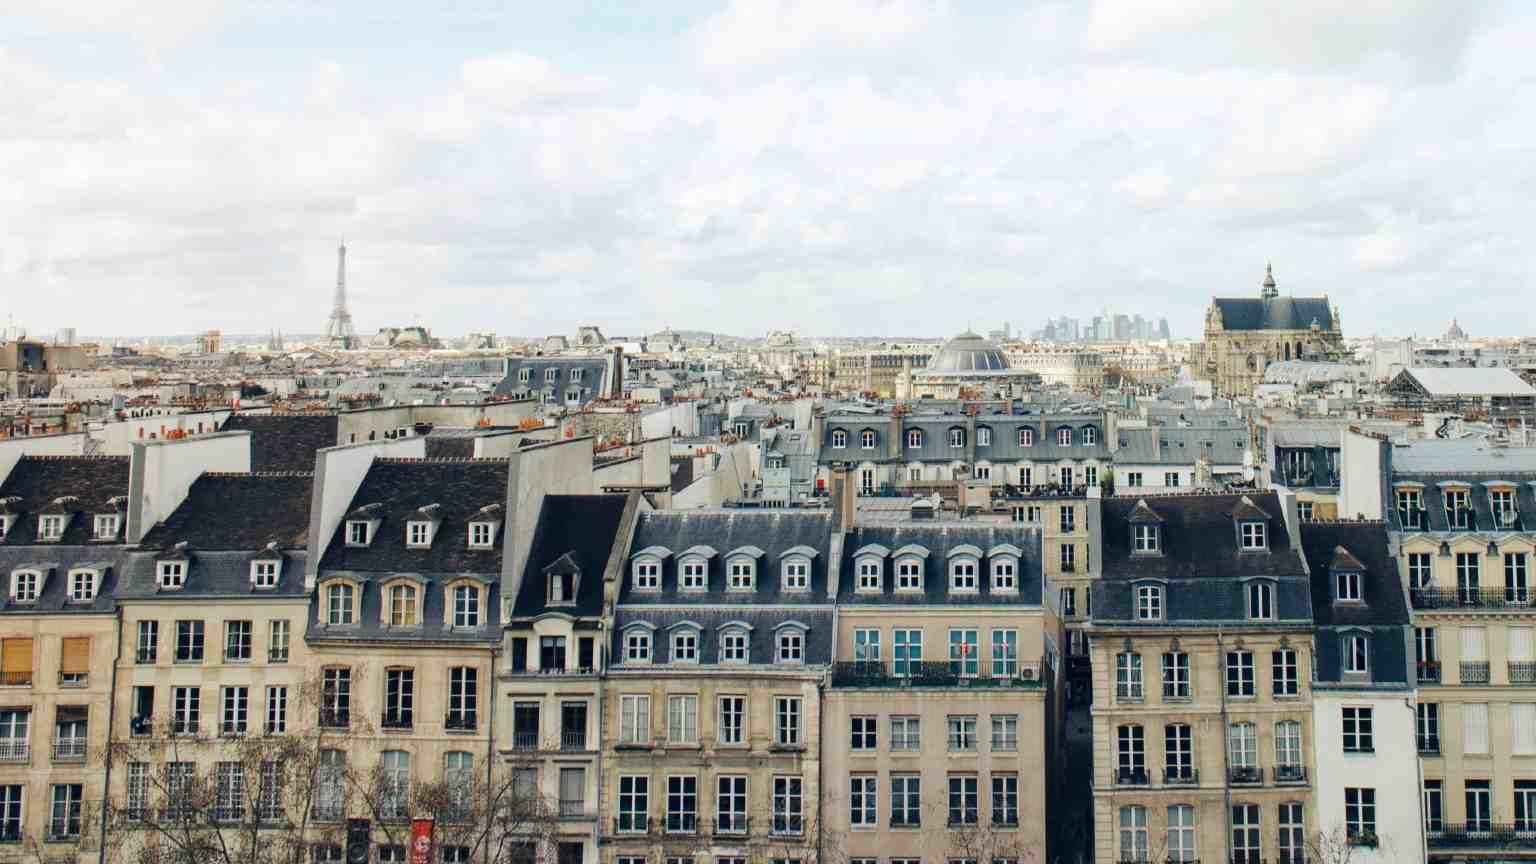 Buildings in Paris, France